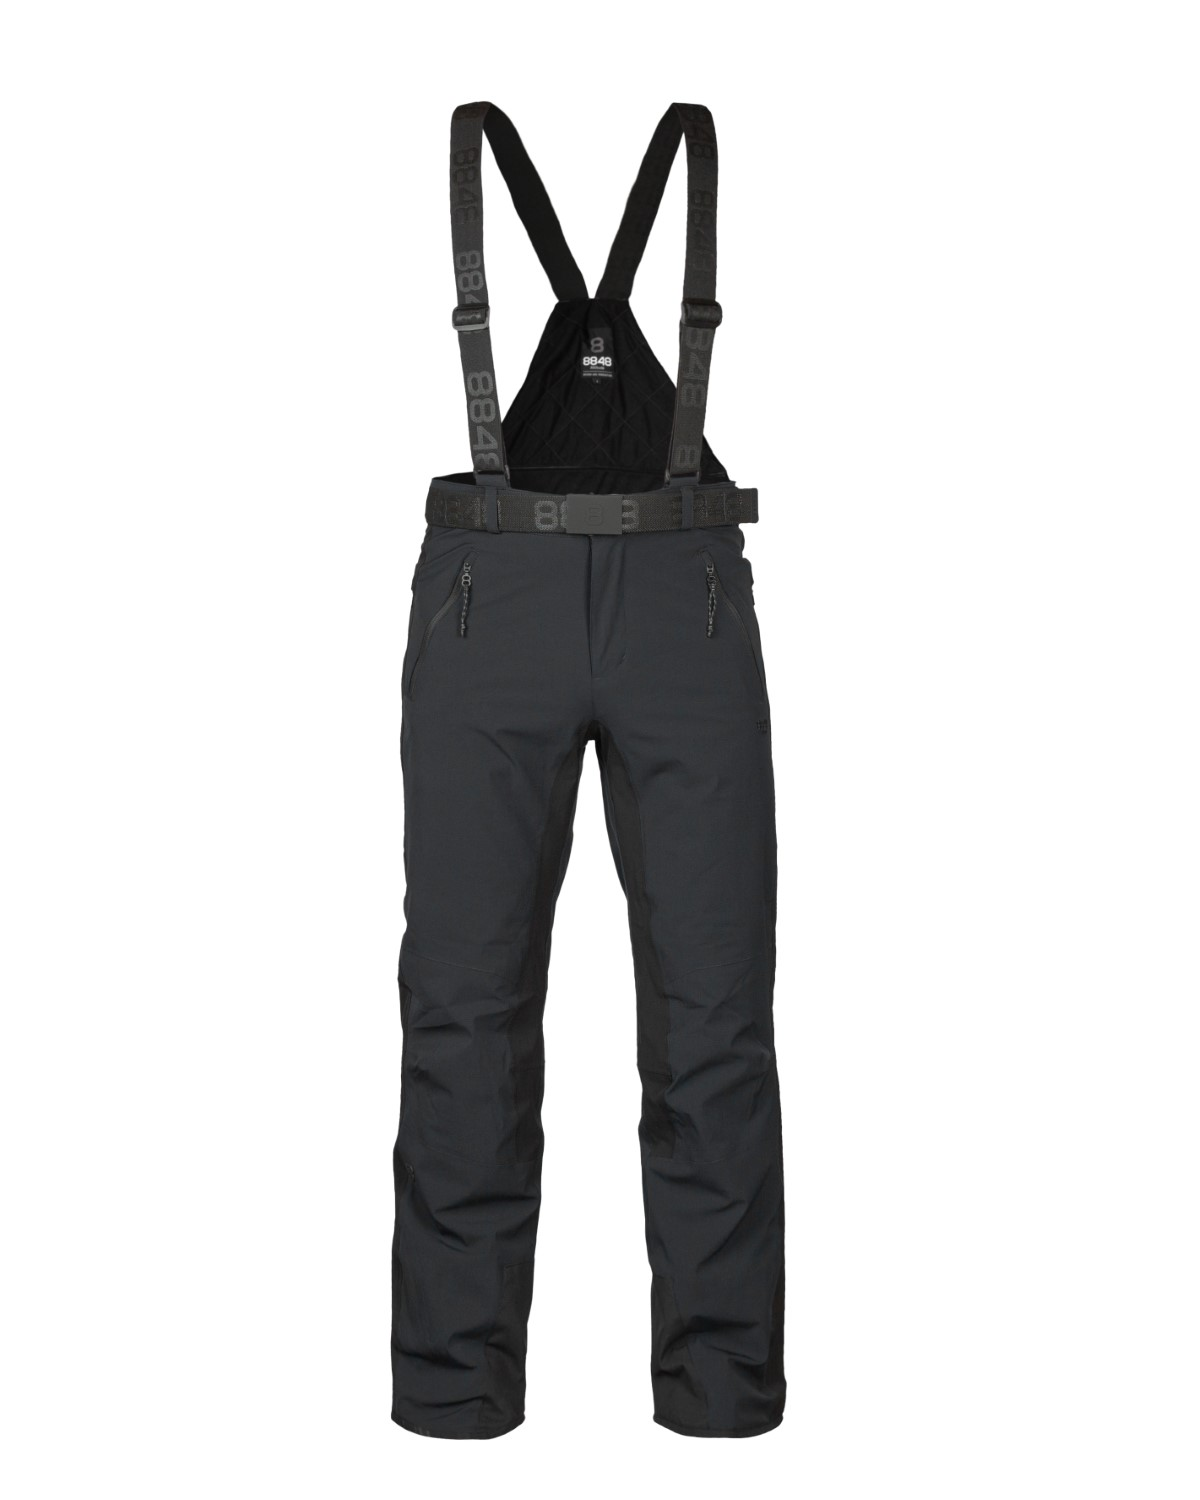 8848 Altitude M Rothorn 2_0 Pant 2021